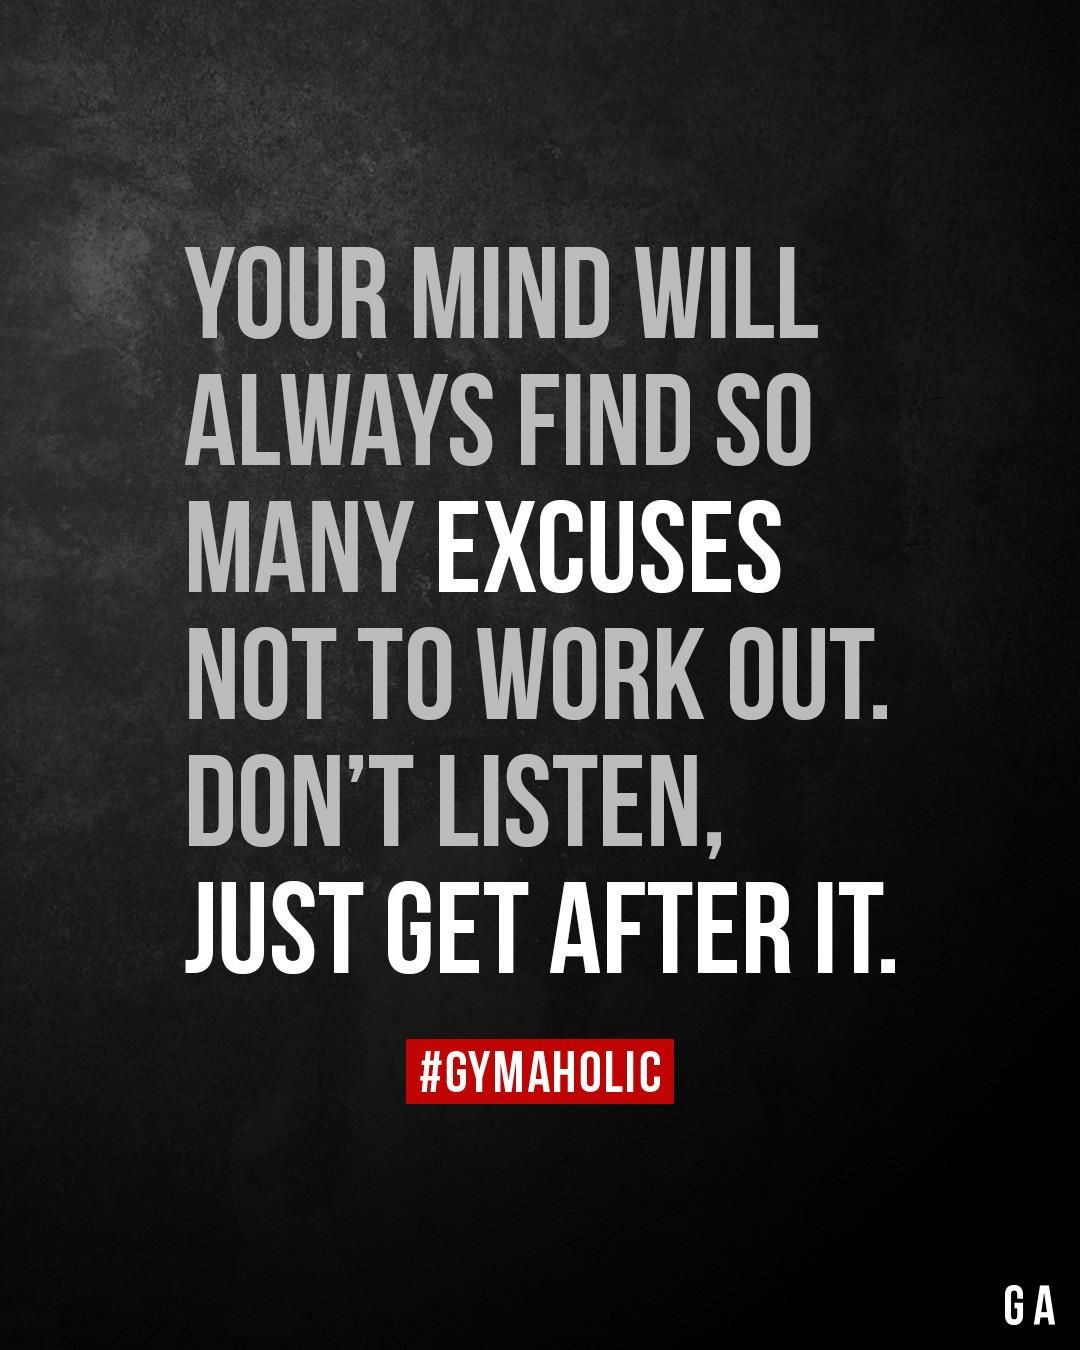 Your mind will always find so many excuses not to work out.